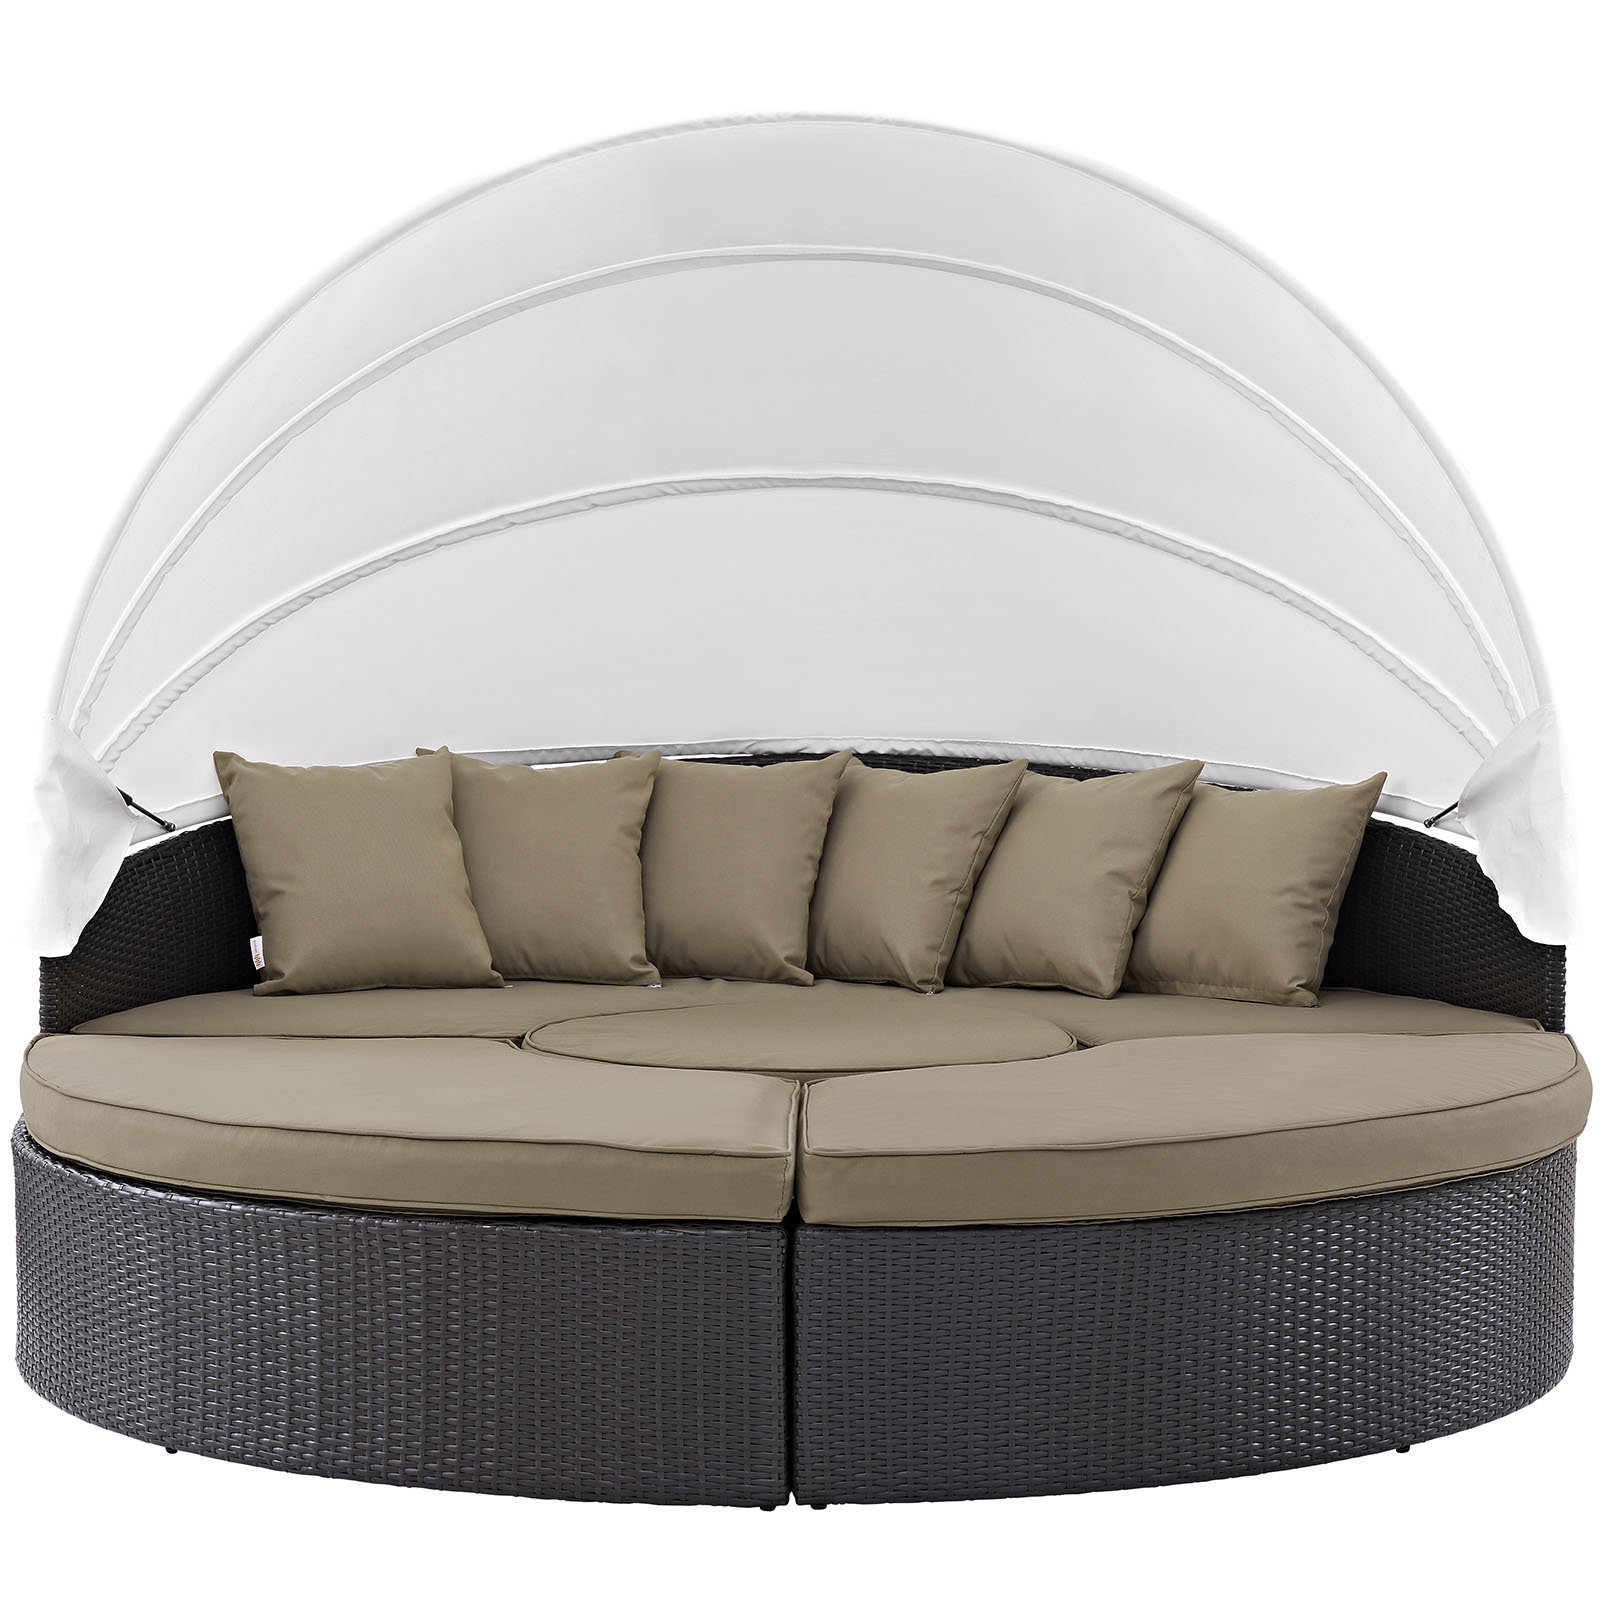 Brentwood Patio Daybed With Cushions With Popular Leiston Round Patio Daybeds With Cushions (View 1 of 20)